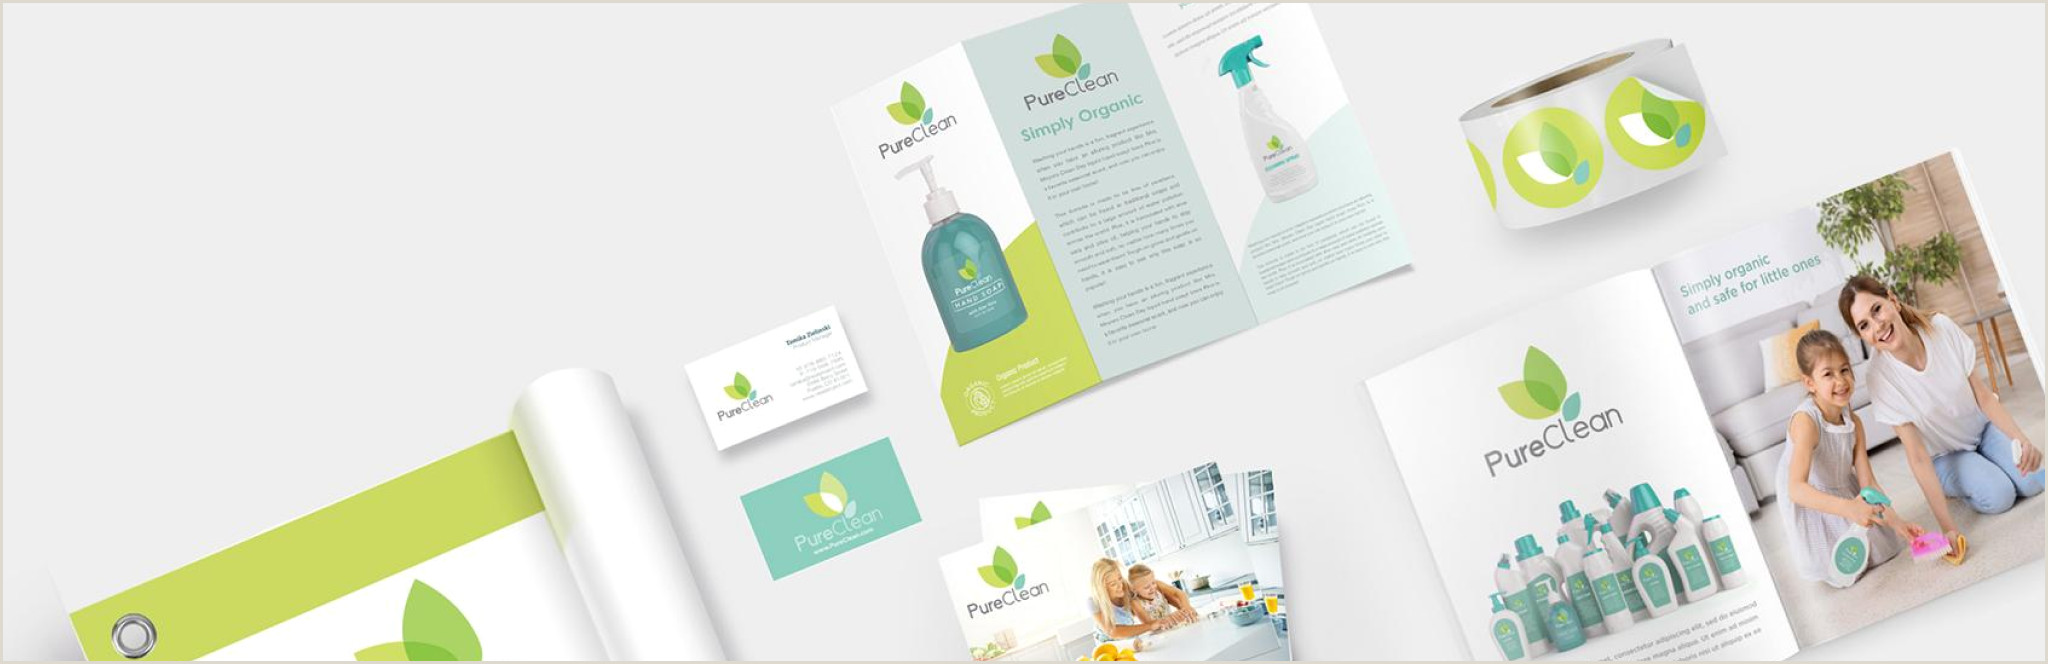 Best Business Cards Of All Time Printplace High Quality Line Printing Services